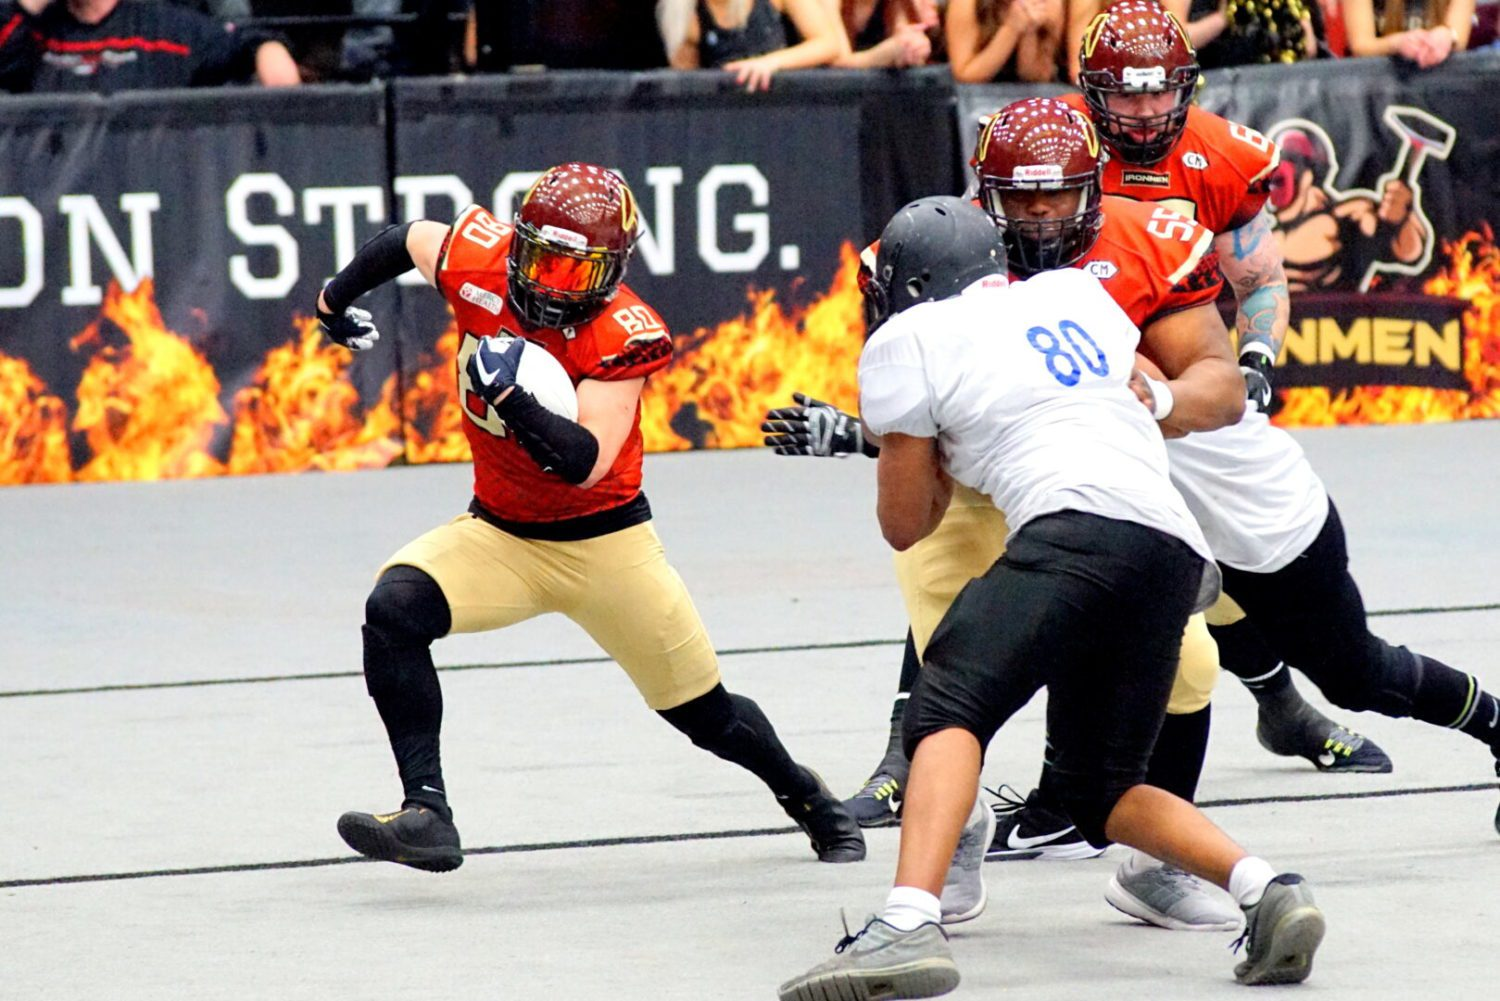 West Michigan Ironmen open the season with a 95-0 pummeling of Illinois Renegades